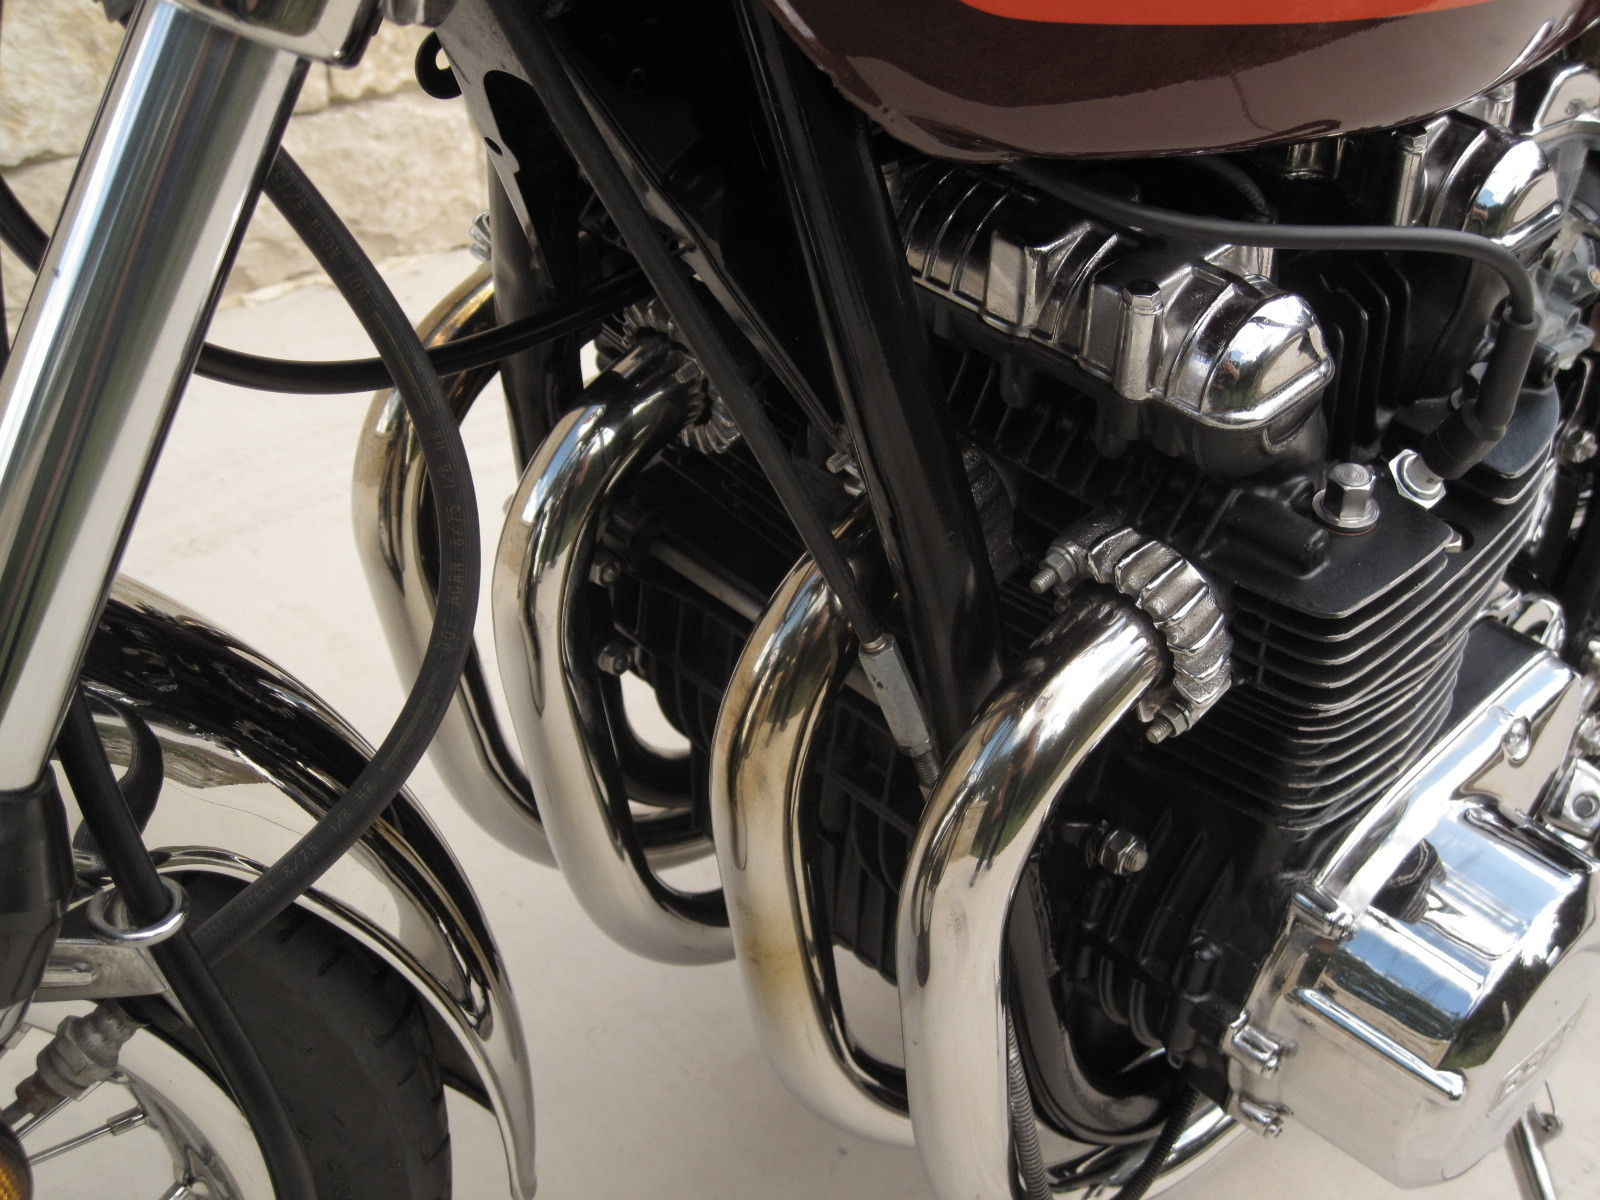 Kawasaki Z1 - 1973 - Exhaust Headers, Frame and Cam Cover.